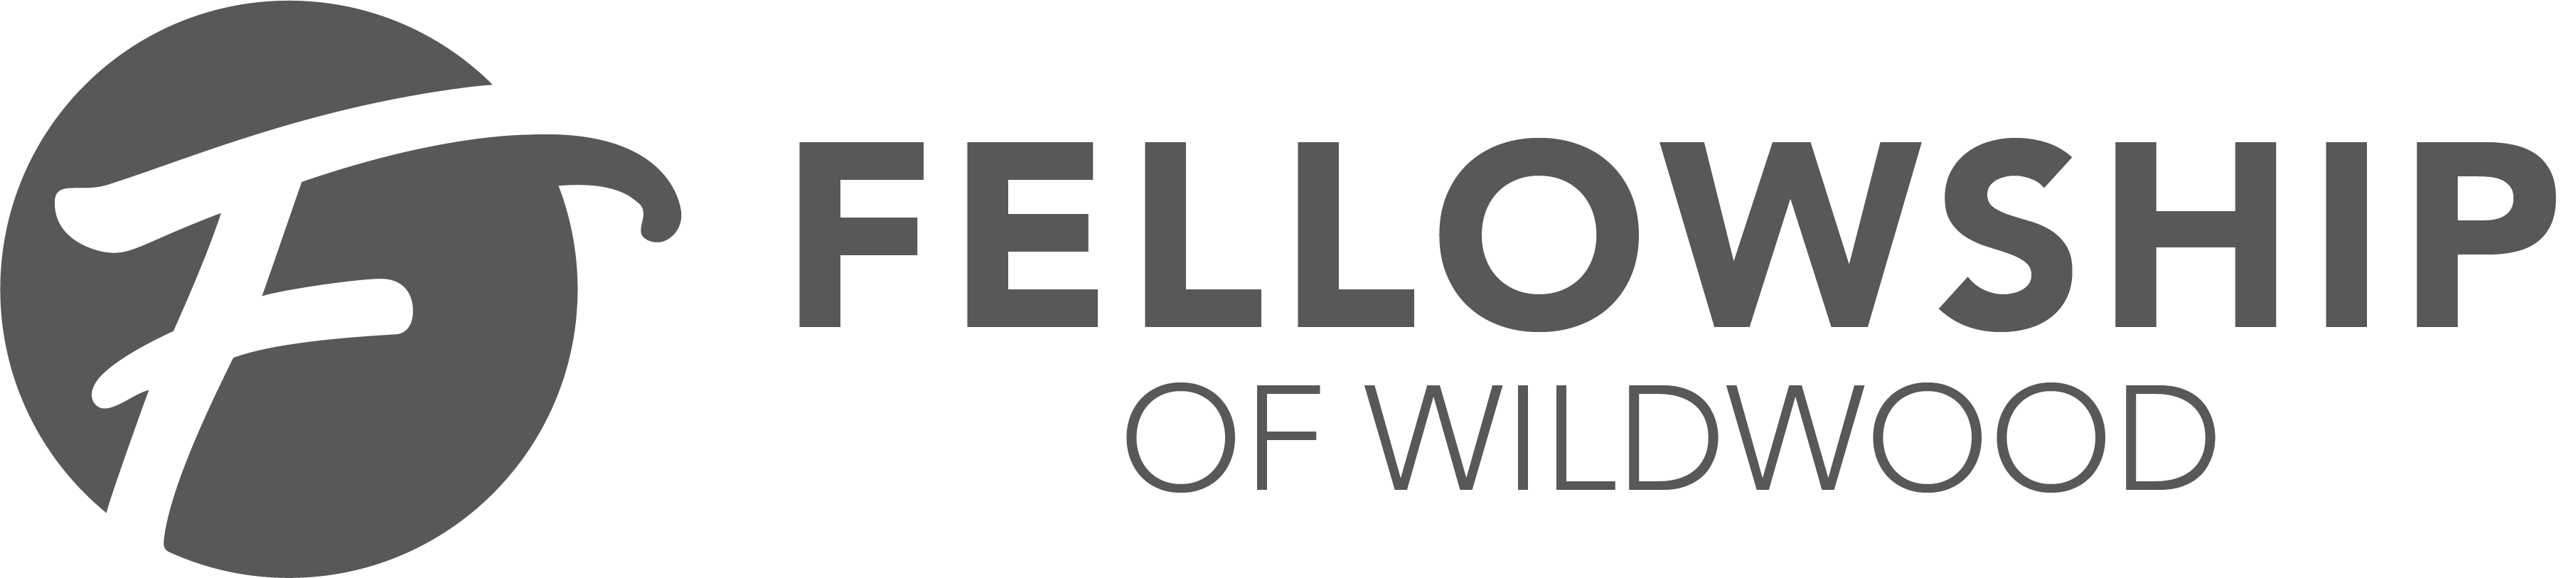 Ellisville Church Footer Logo